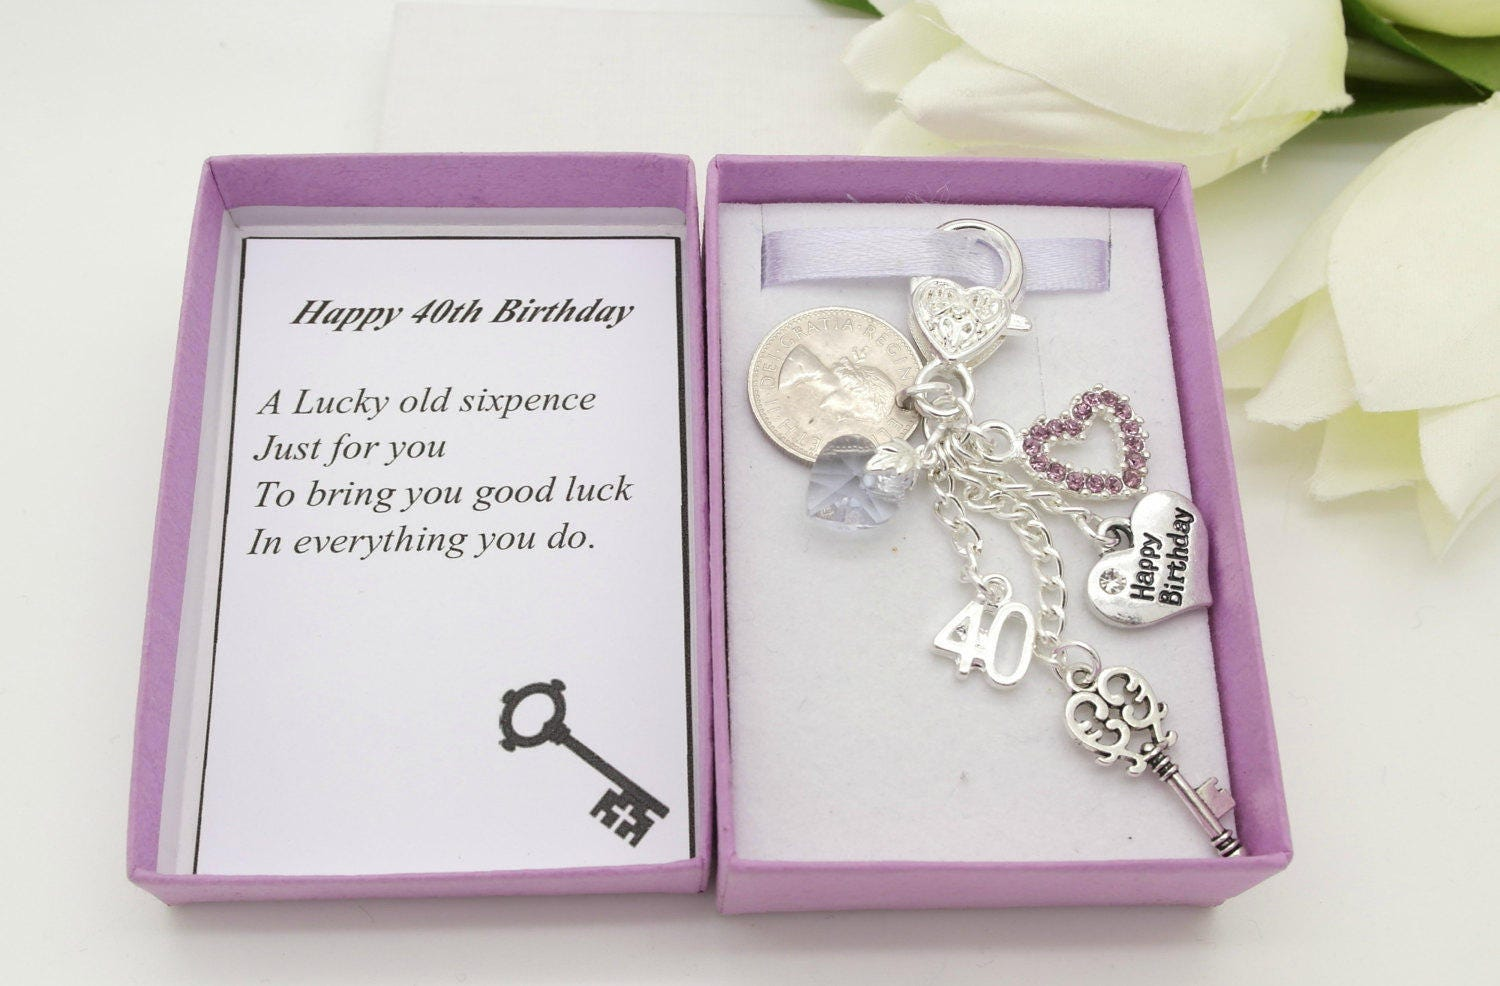 Personalised Happy 40th Birthday Gift Lilac Key Lucky Sixpence Charm Keyring